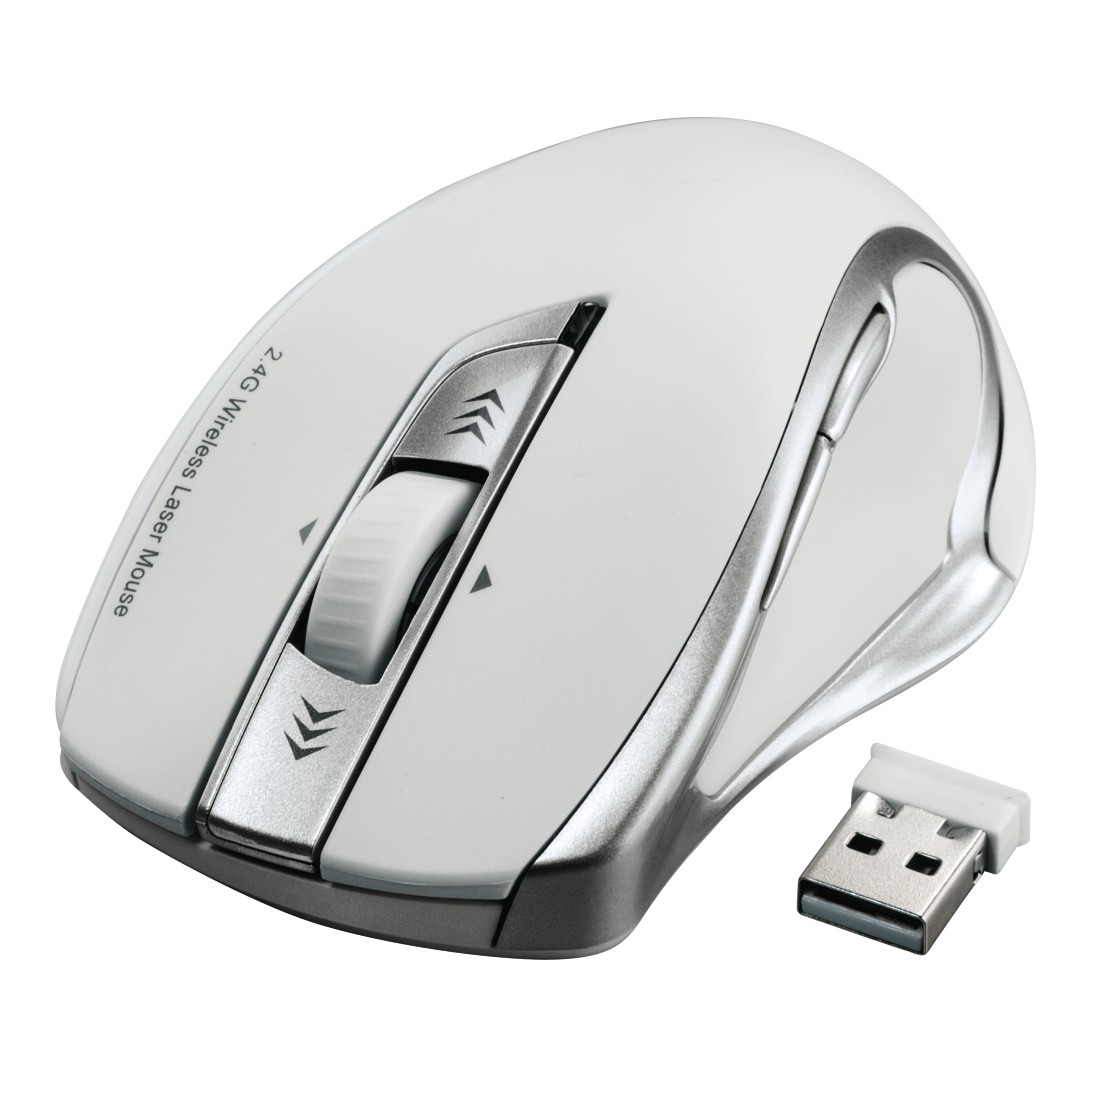 abx4 High-Res Image4 - Hama, Mirano Wireless Laser Mouse, noiseless, white